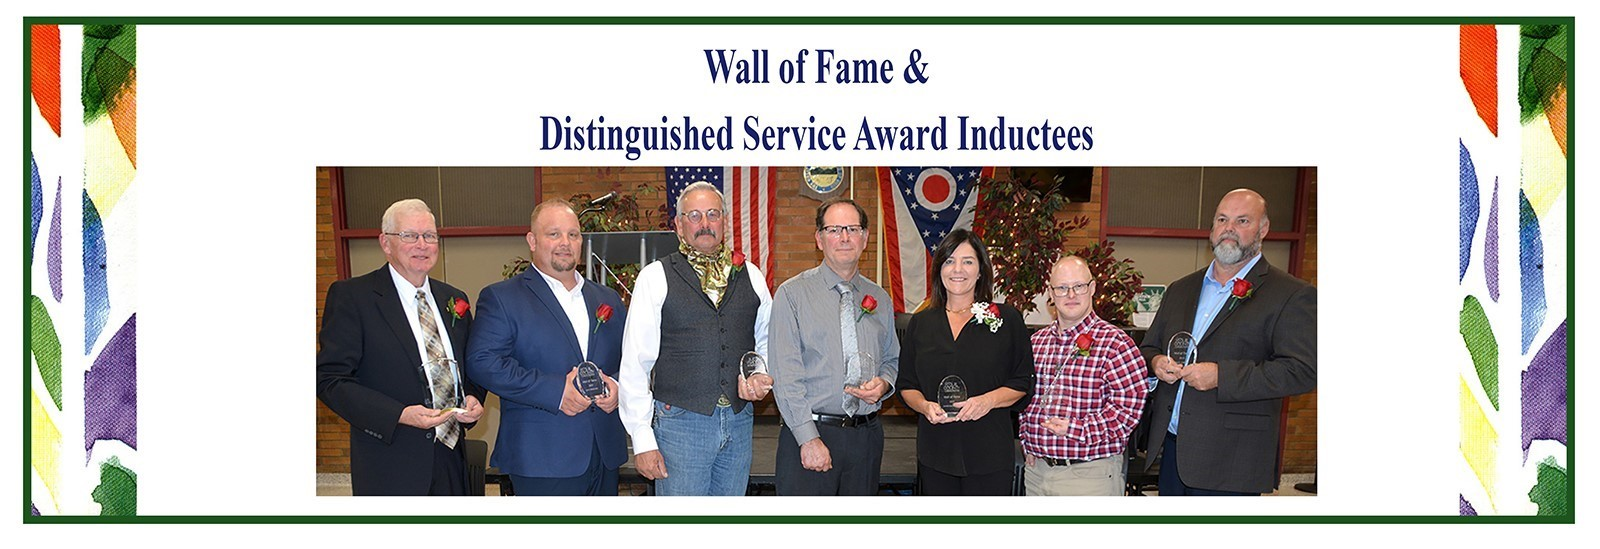 2019 Wall of Fame & Distinguished Service Award Inductees